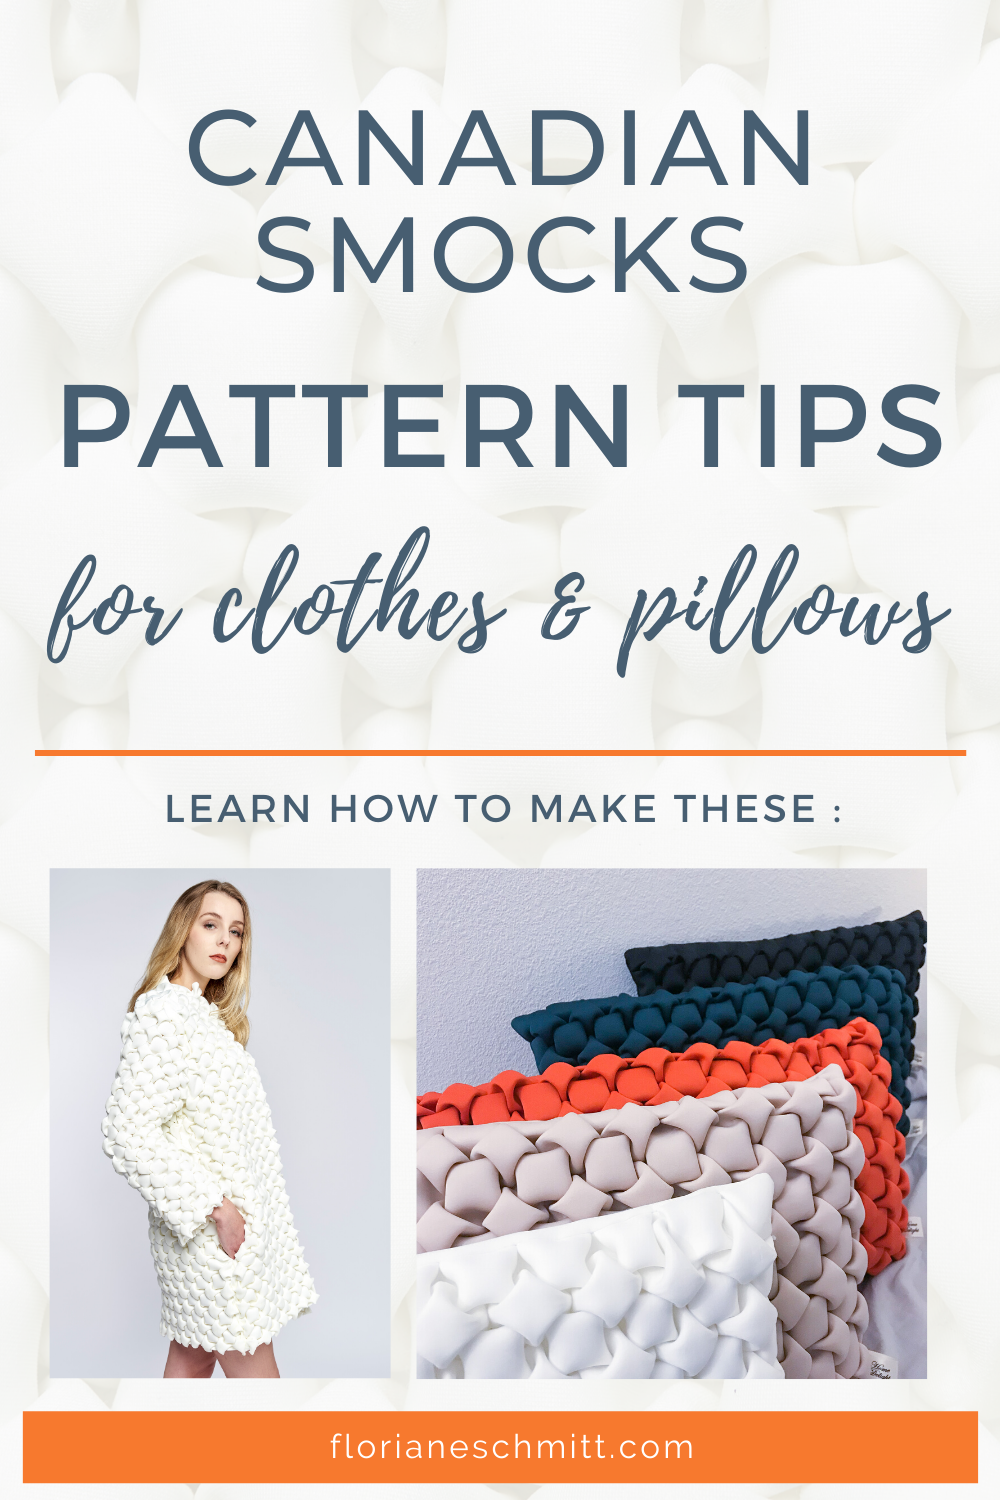 Patterns tips for canadian smocks clothes and pillow covers